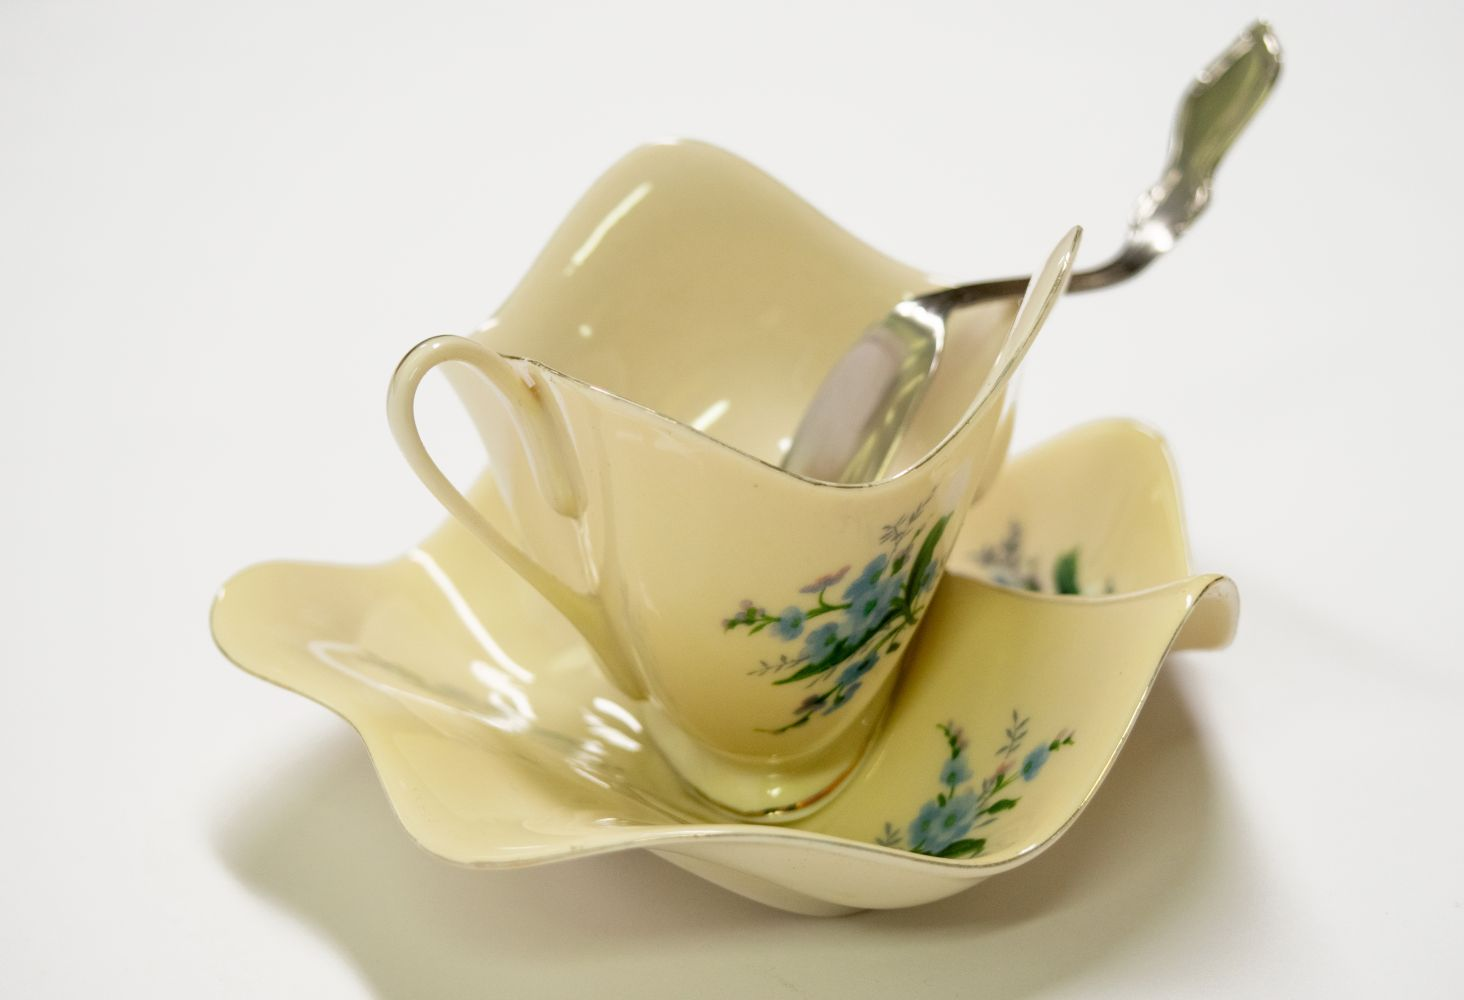 Robert Lazzarini Untitled (Teacup, Saucer, and Spoon)